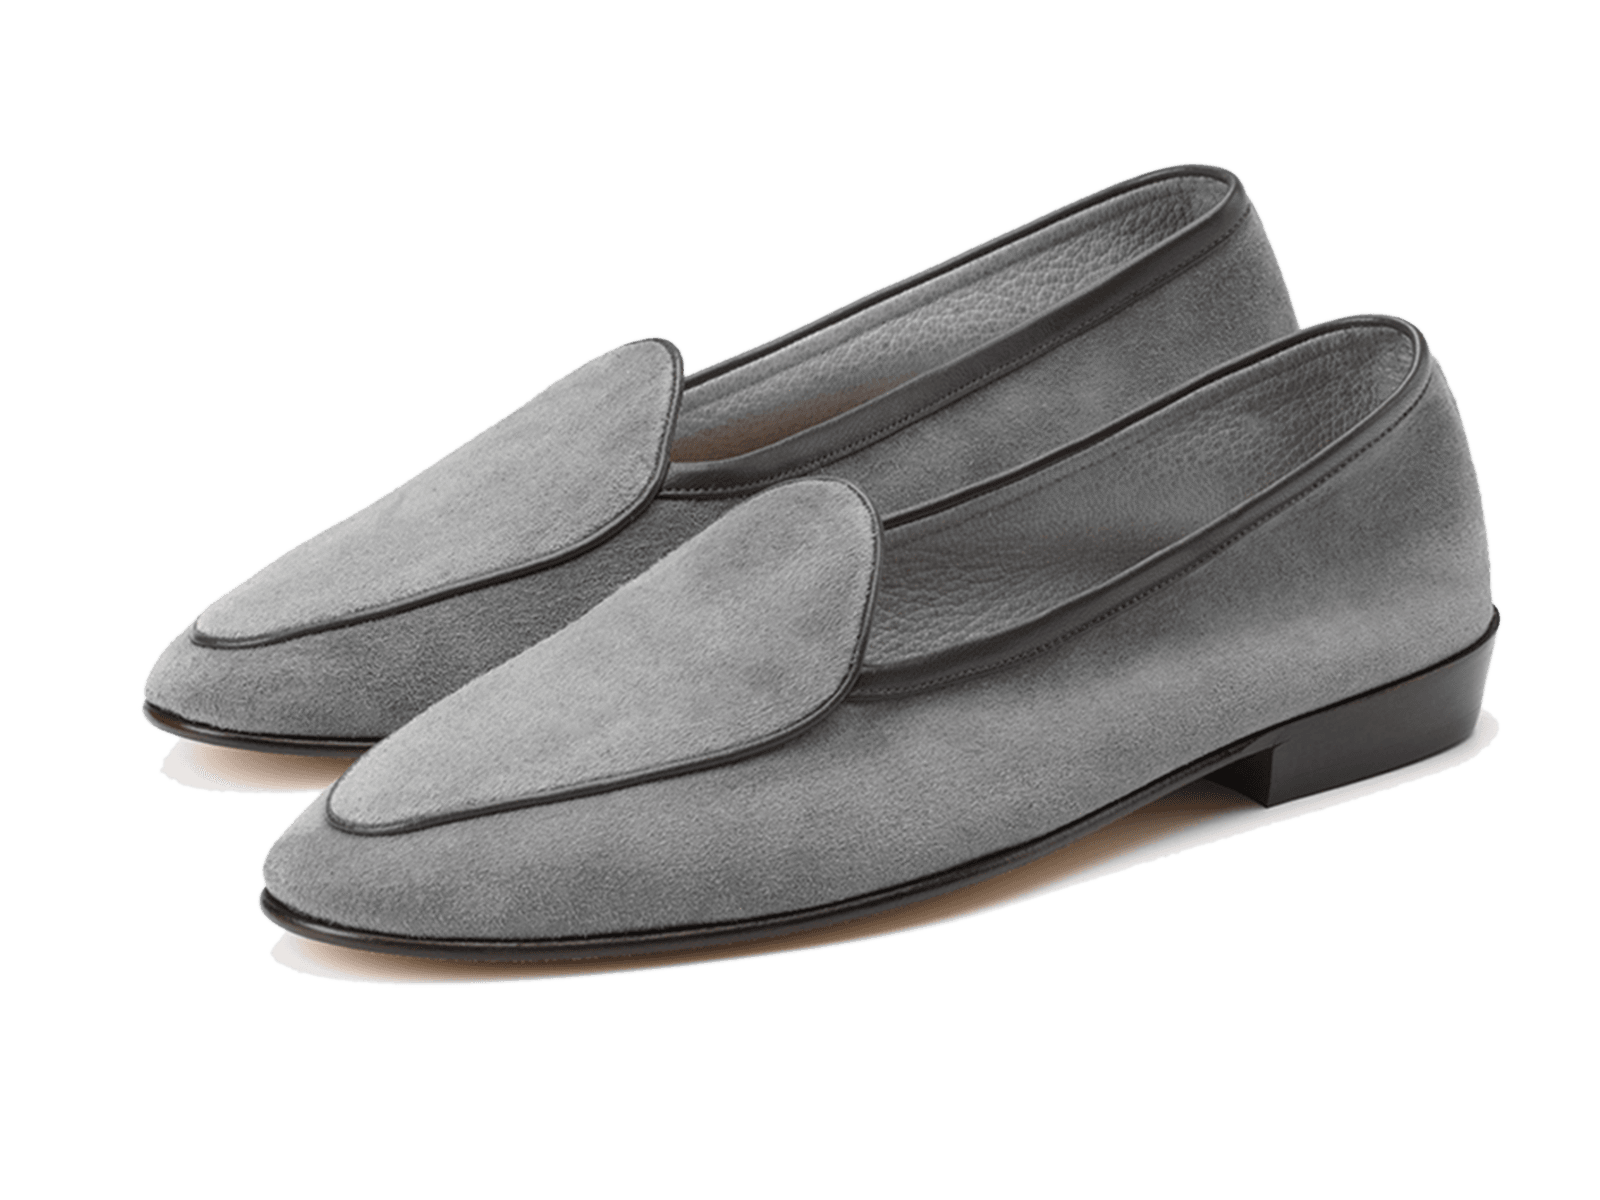 Sagan Classic Plain in Moon Grey Suede